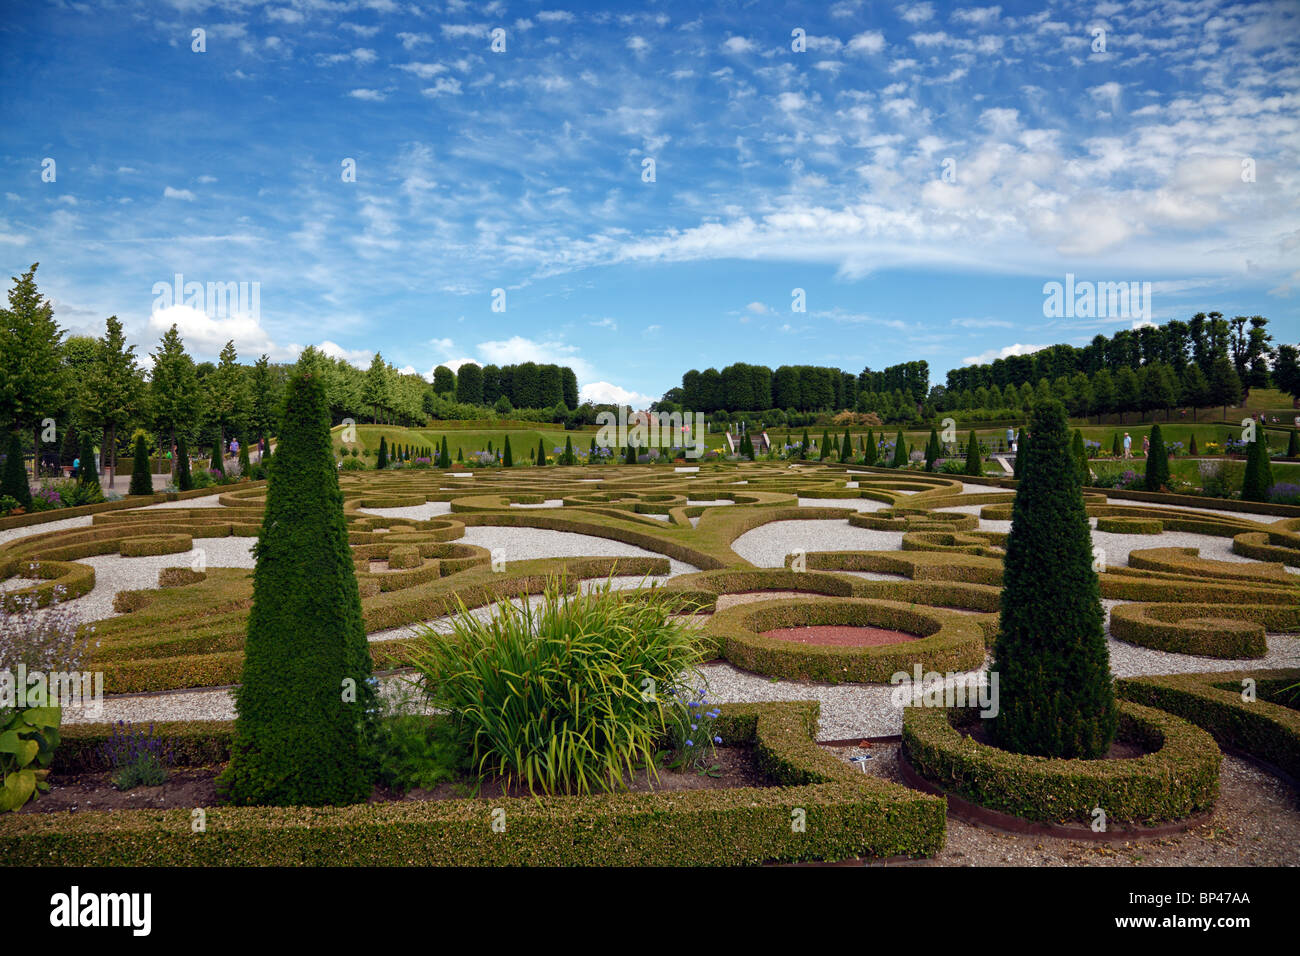 The Baroque Garden at the Frederiksborg Castle in Hillerød, Denmark - Stock Image